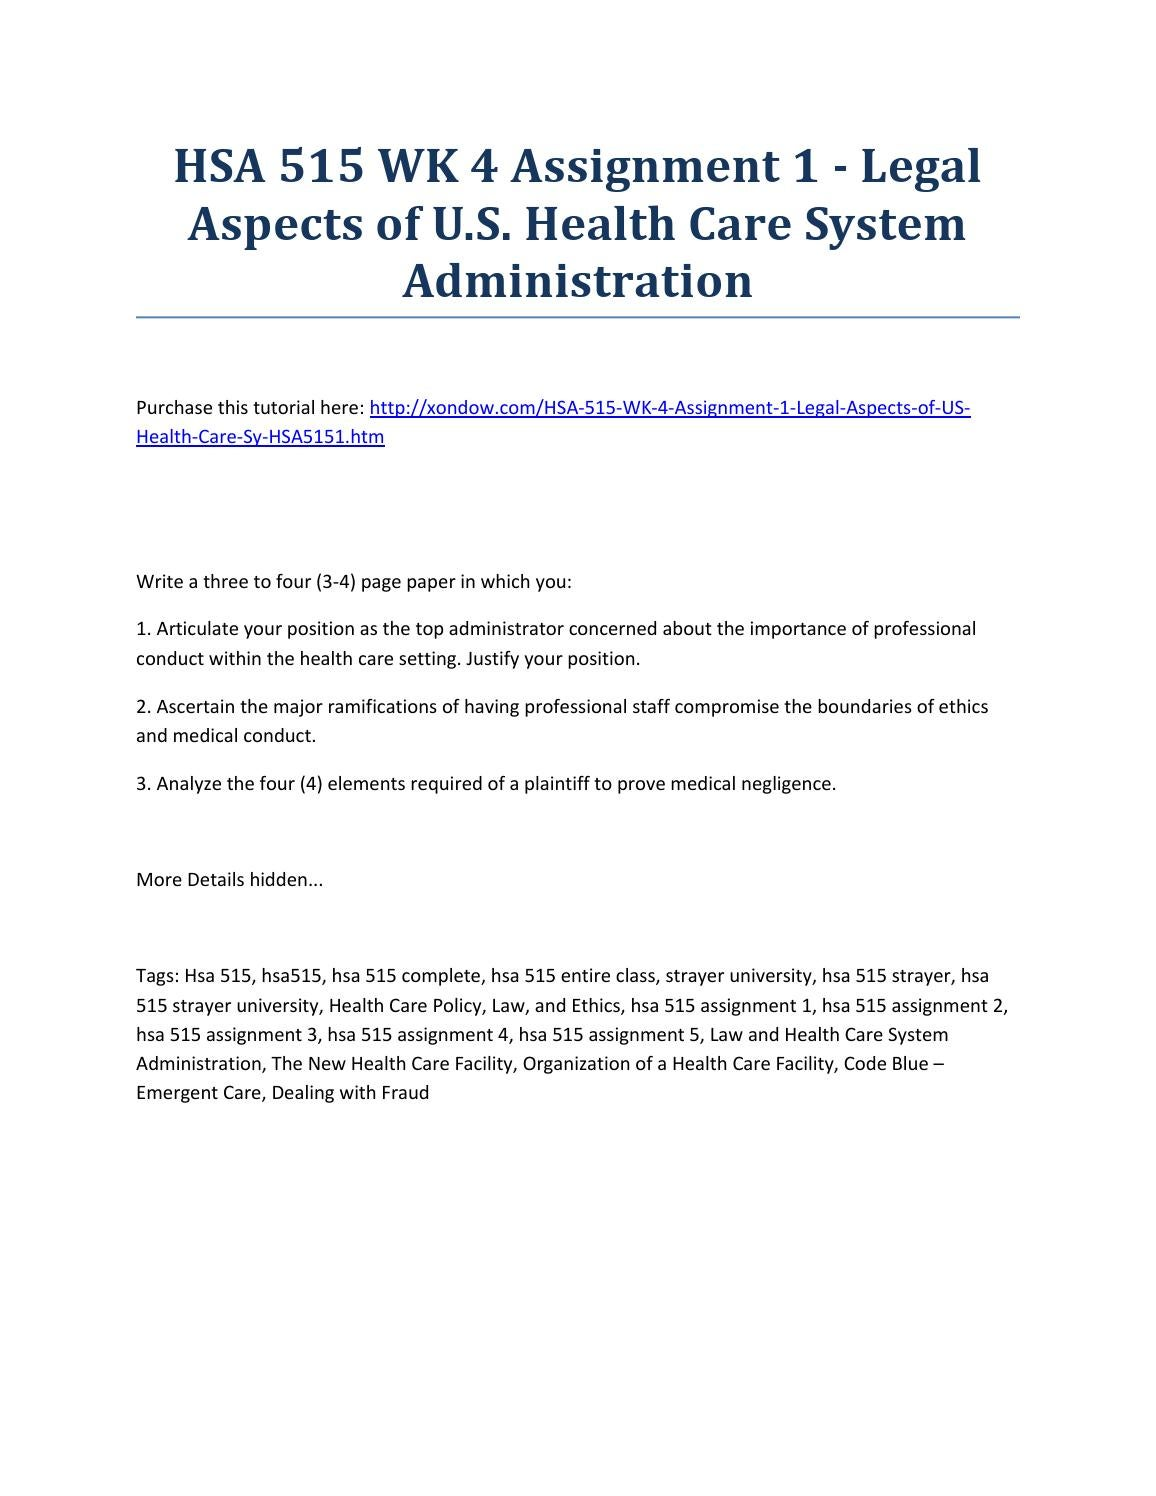 Hsa 515 week 4 assignment 1 legal aspects of u s health care